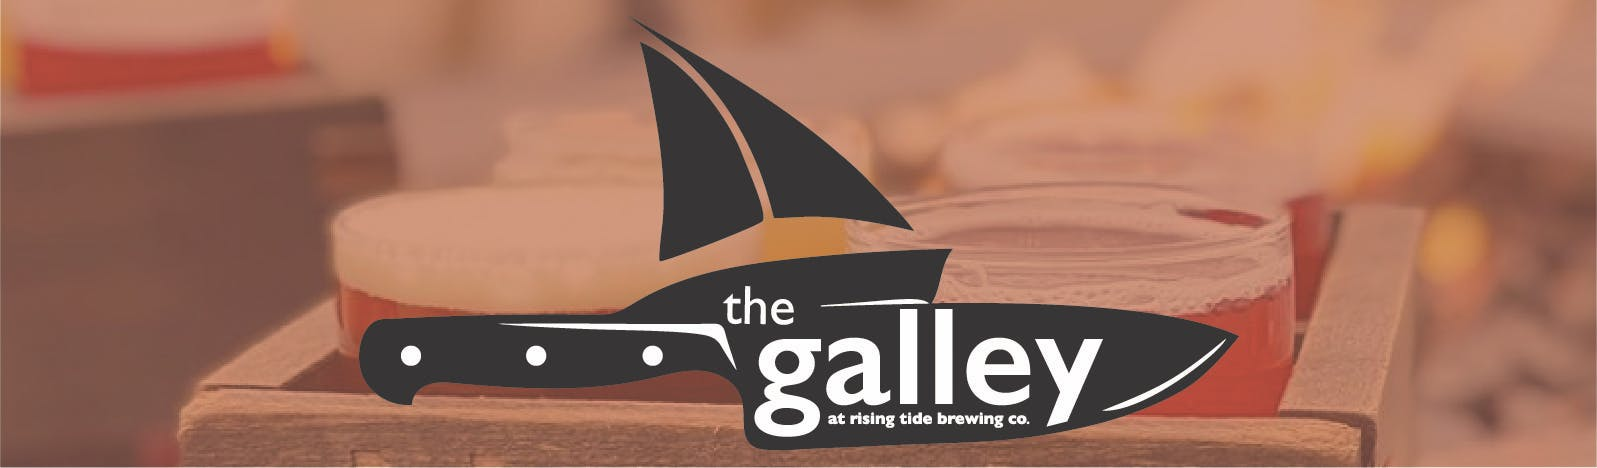 The Galley-01